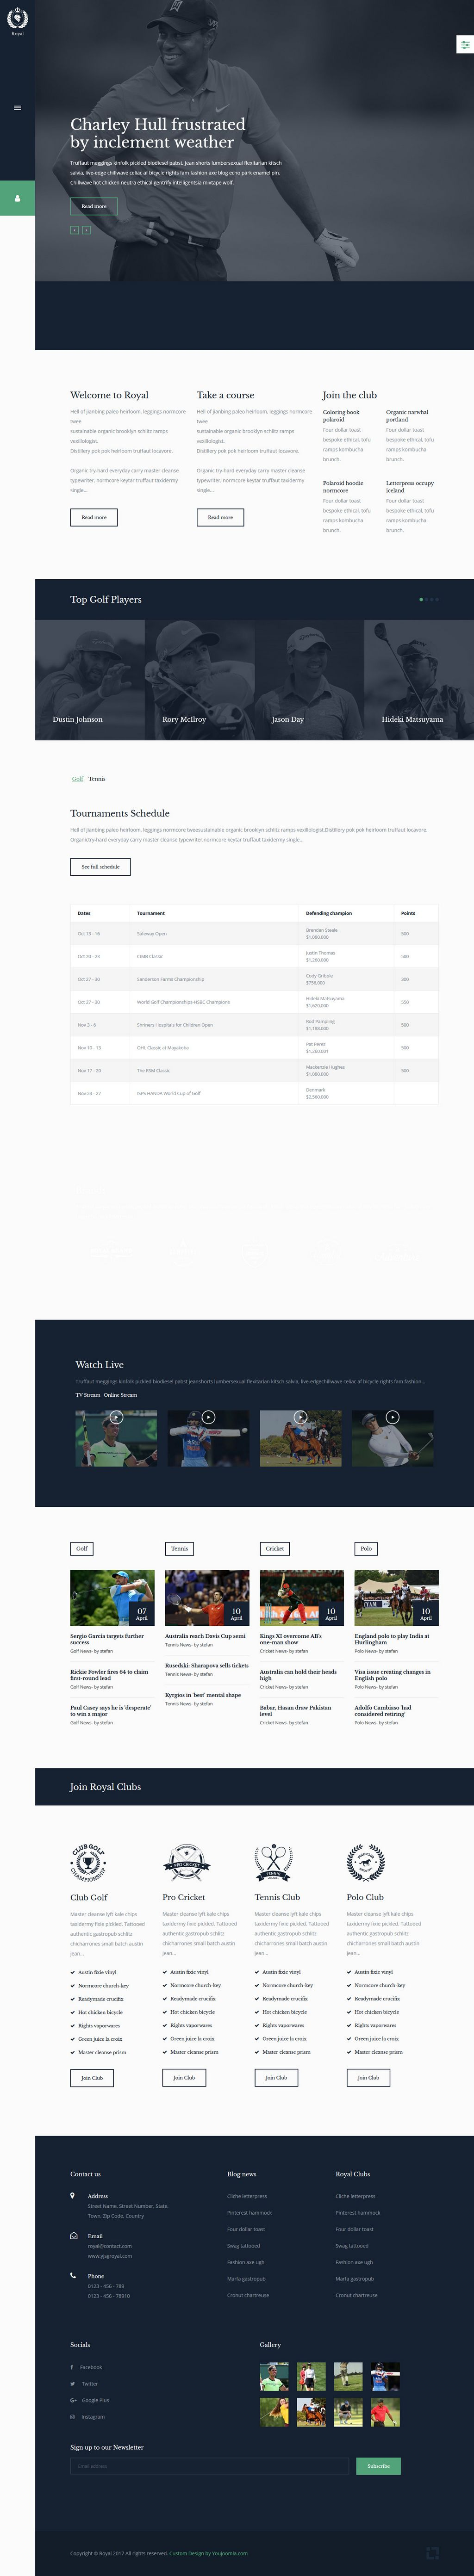 royal sports you joomla template 01 - royal-sports-you-joomla-template-01